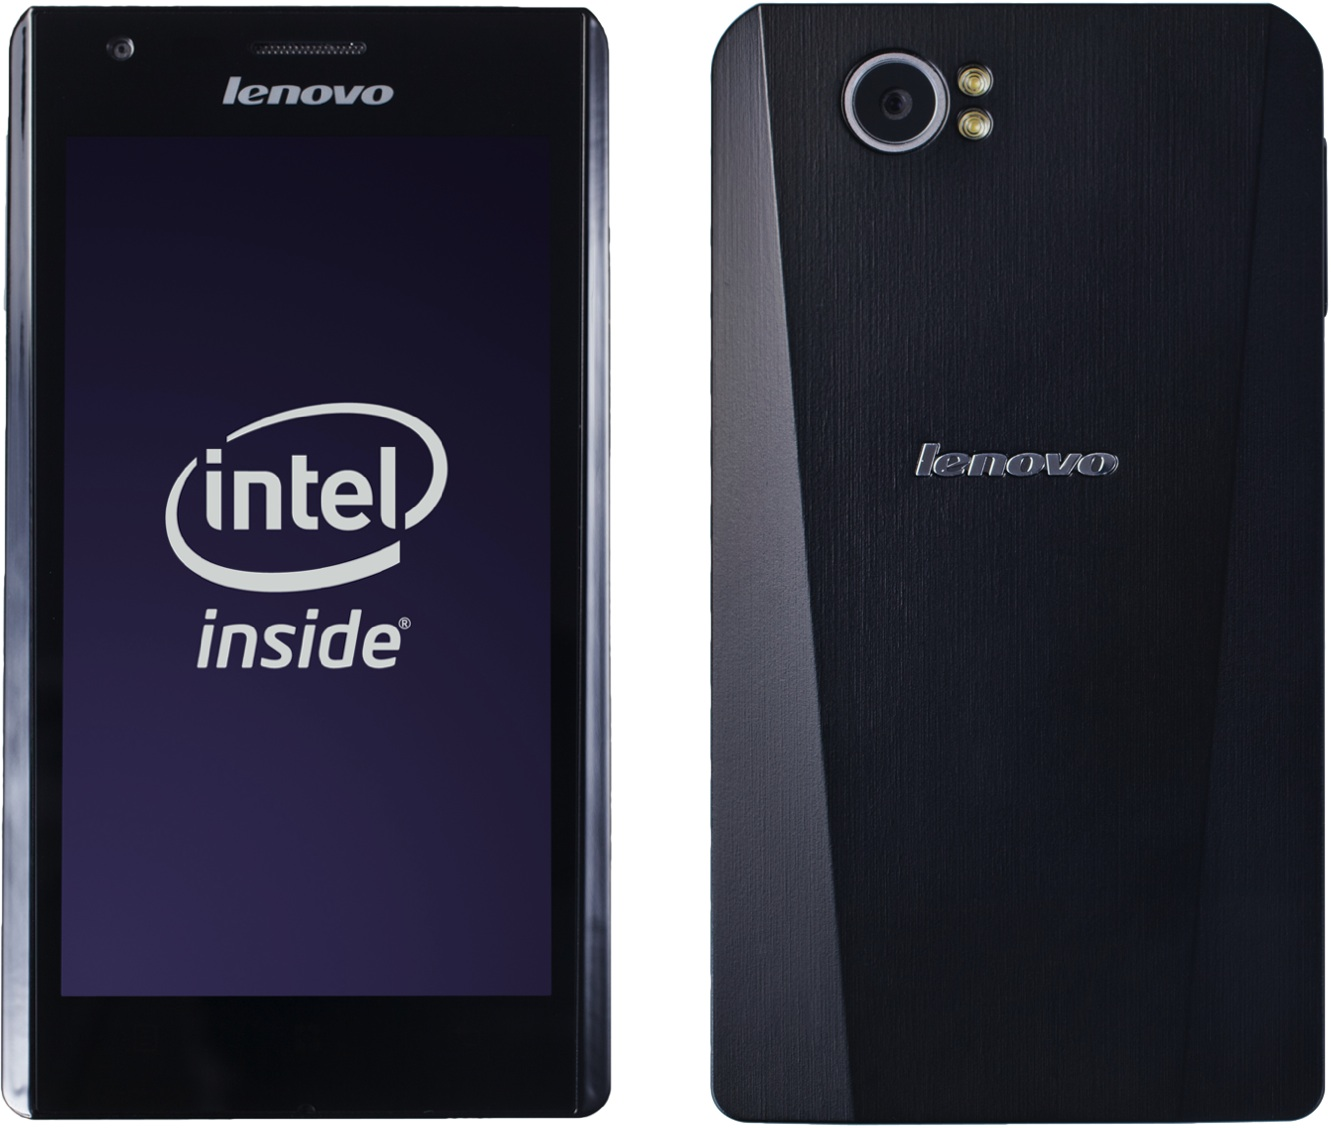 Phone Lenovo Android Phone Price lenovo android phone price